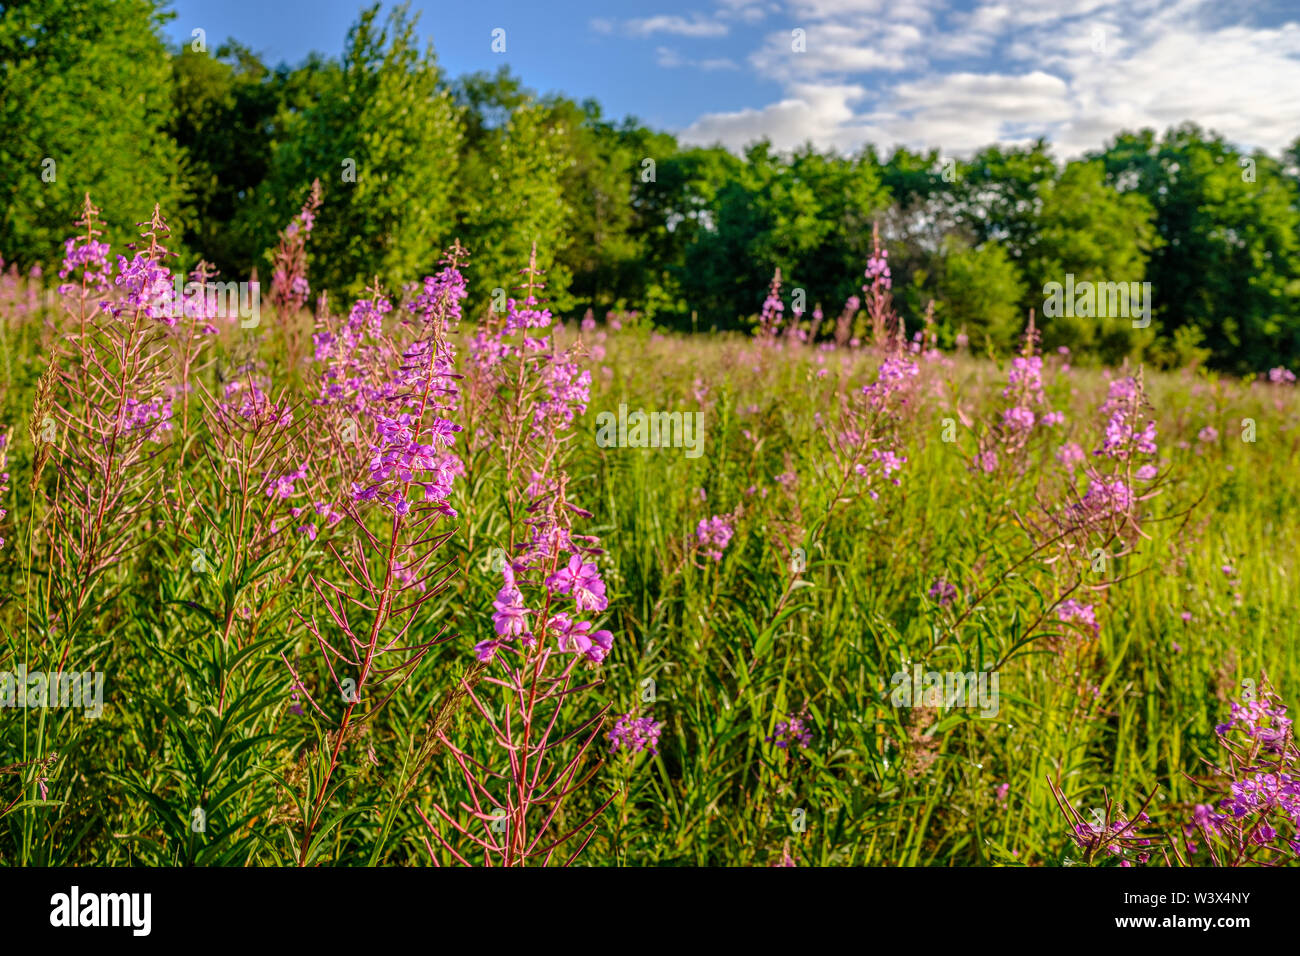 Blooming plant Ivan tea or blooming Sally in a clearing near the forest. Sunny summer morning. Stock Photo